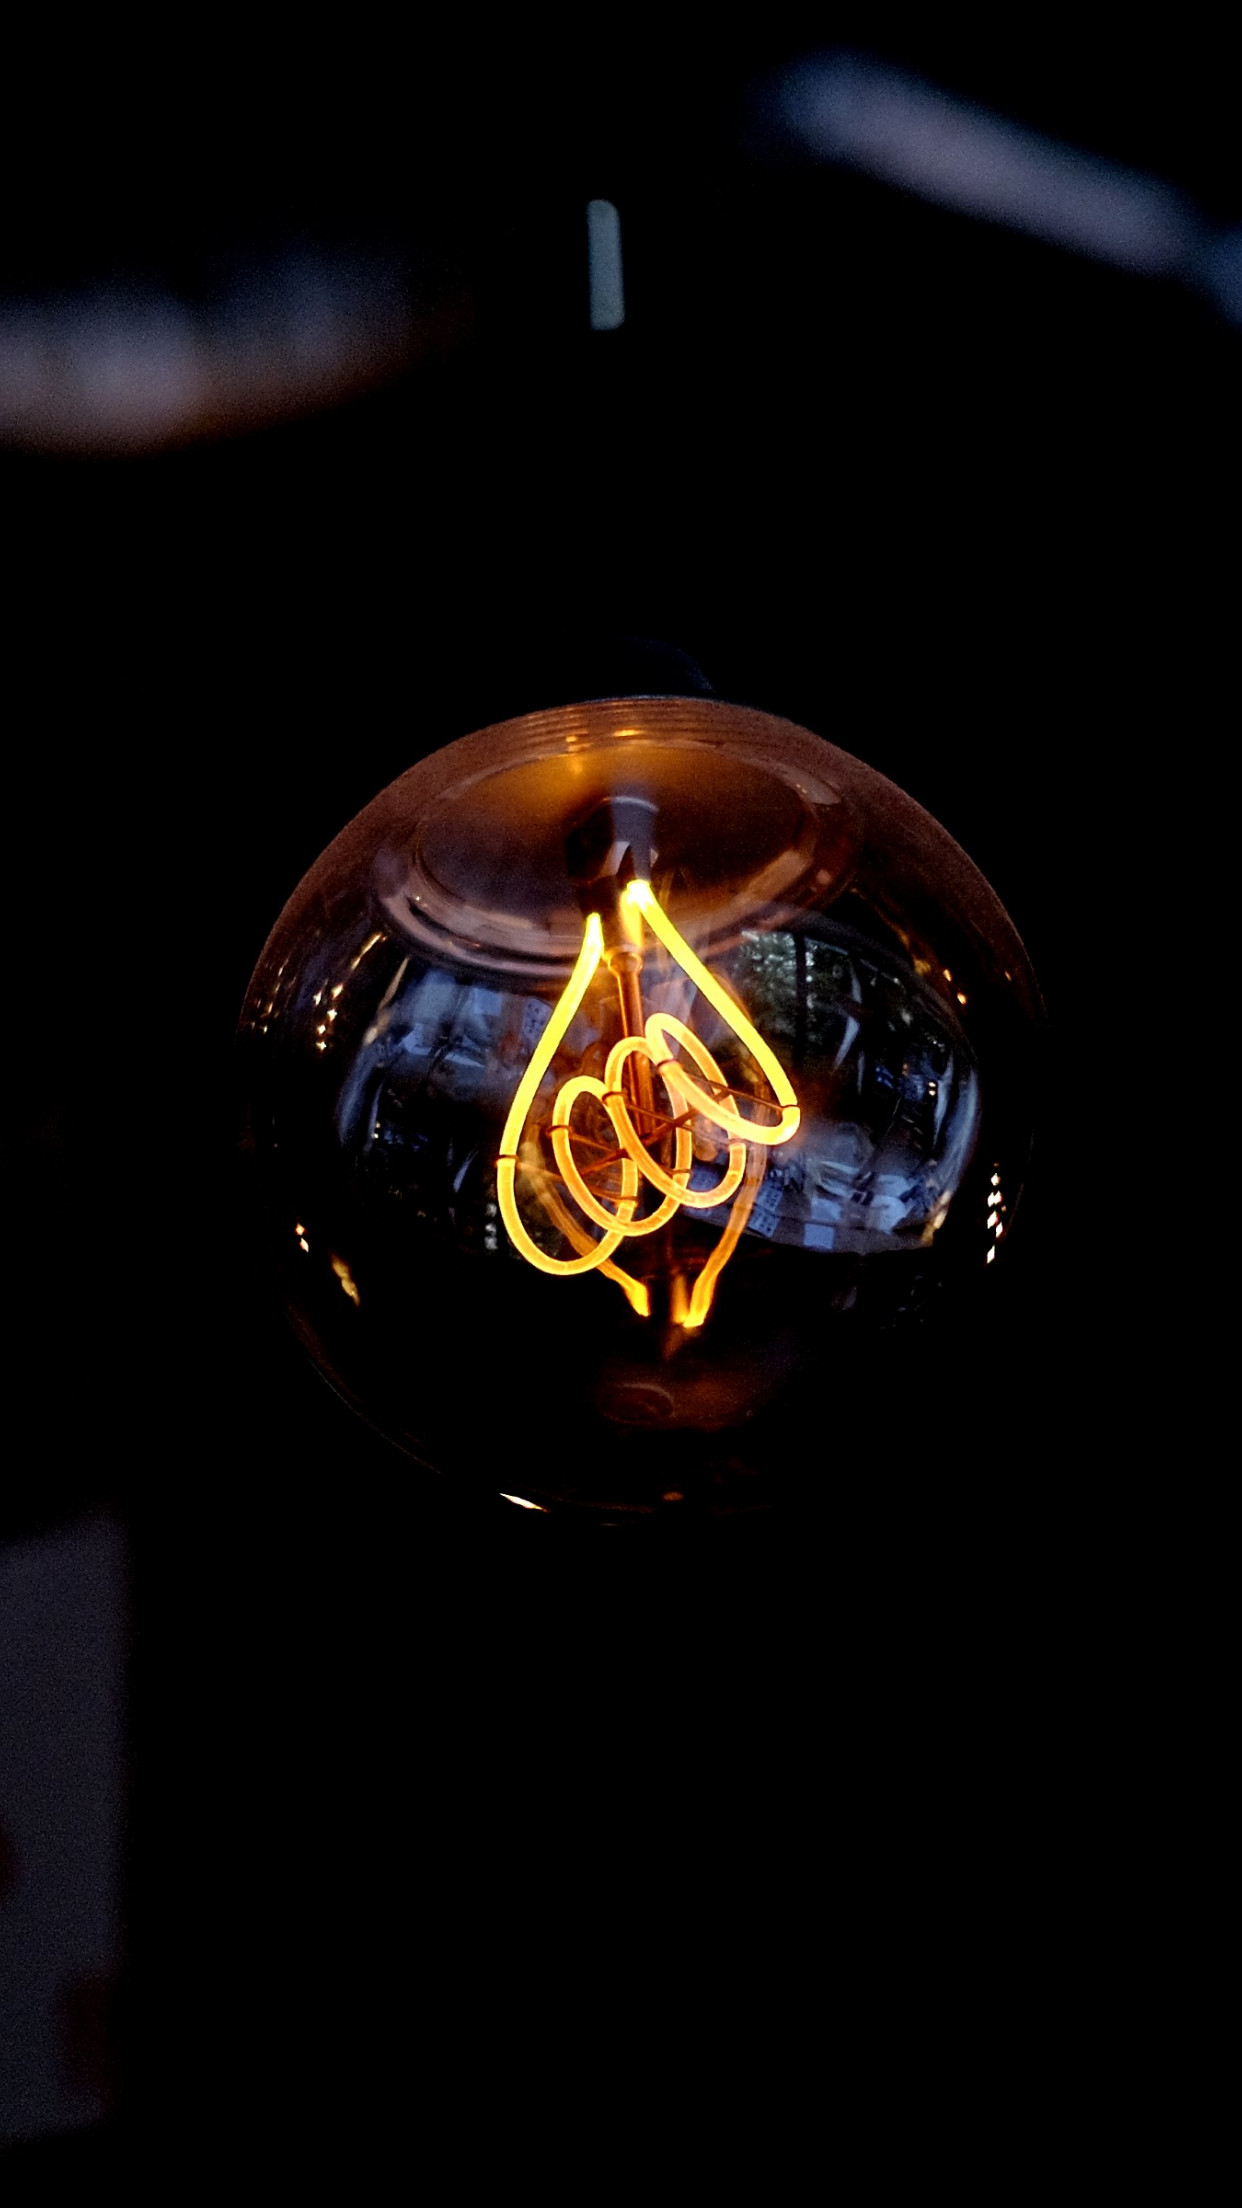 Incandescent light bulb | 1242x2208 wallpaper